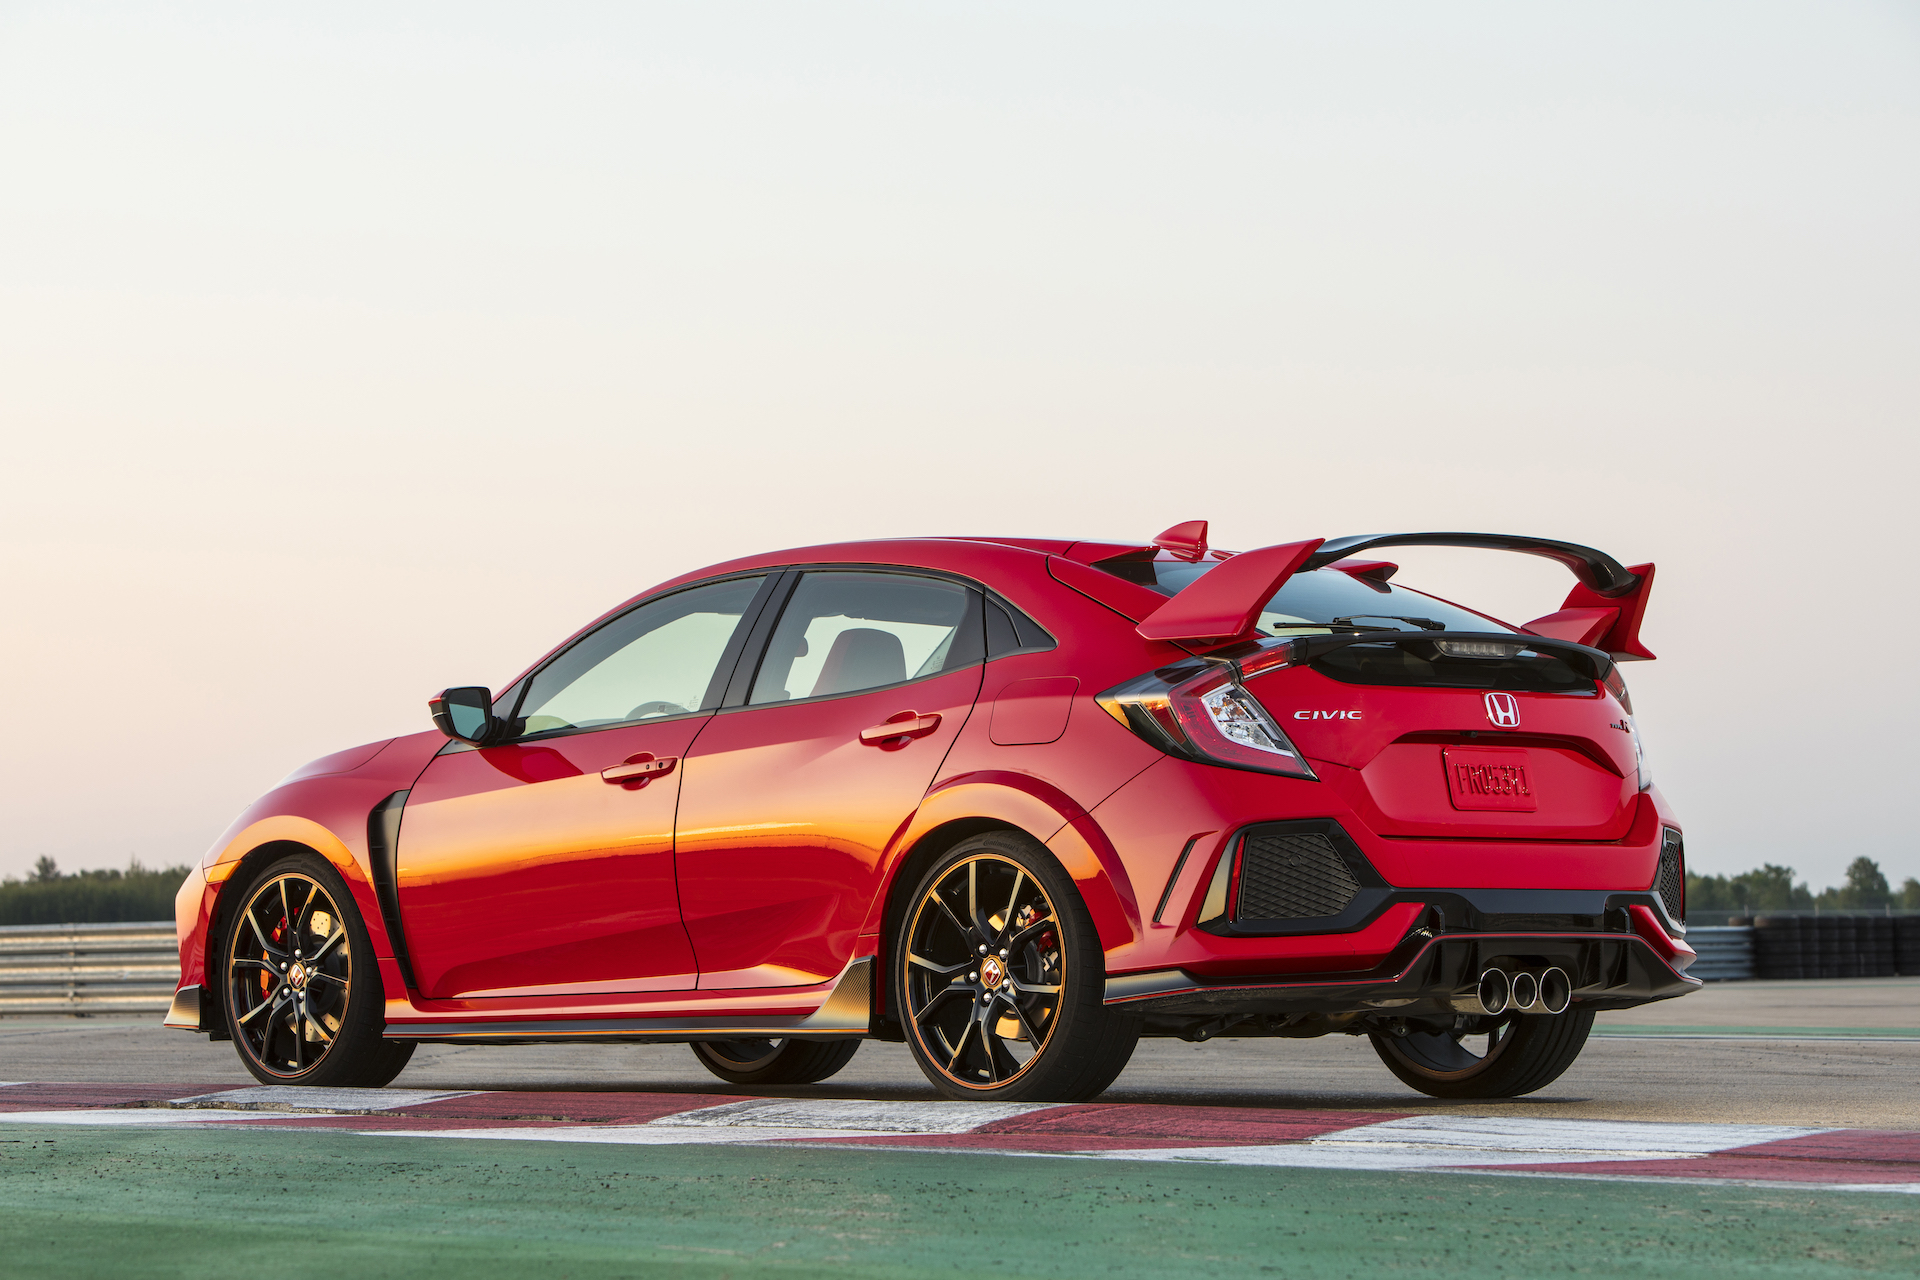 2018 Civic Type R >> Honda Civic Type R Sees Small Price Hike For 2018 Model Year